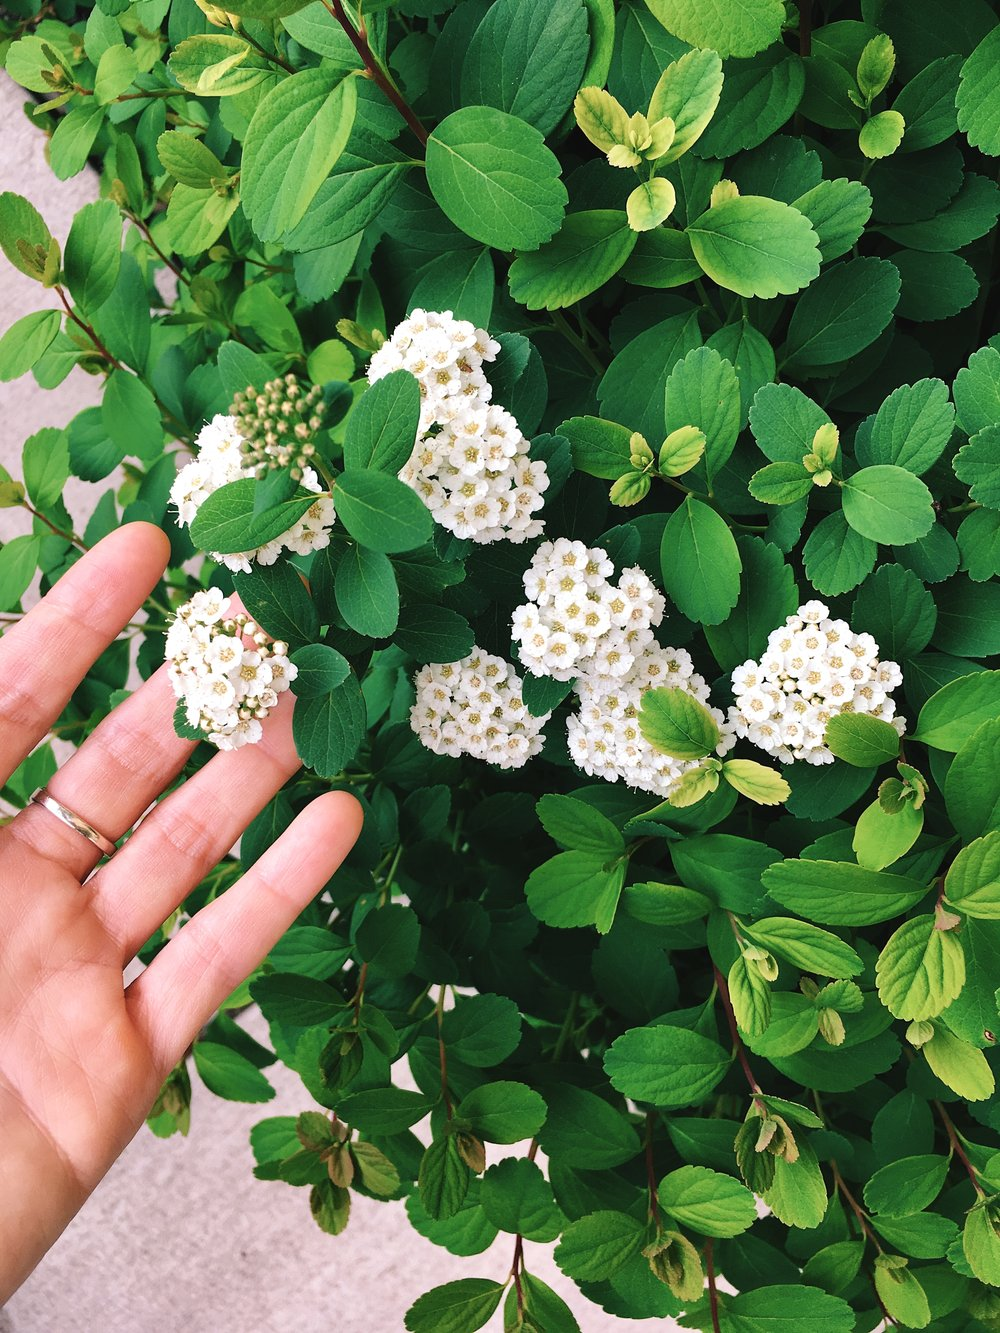 [photo of my hand holding small, clustered white flowers with green leaves. Photo by  MM ]